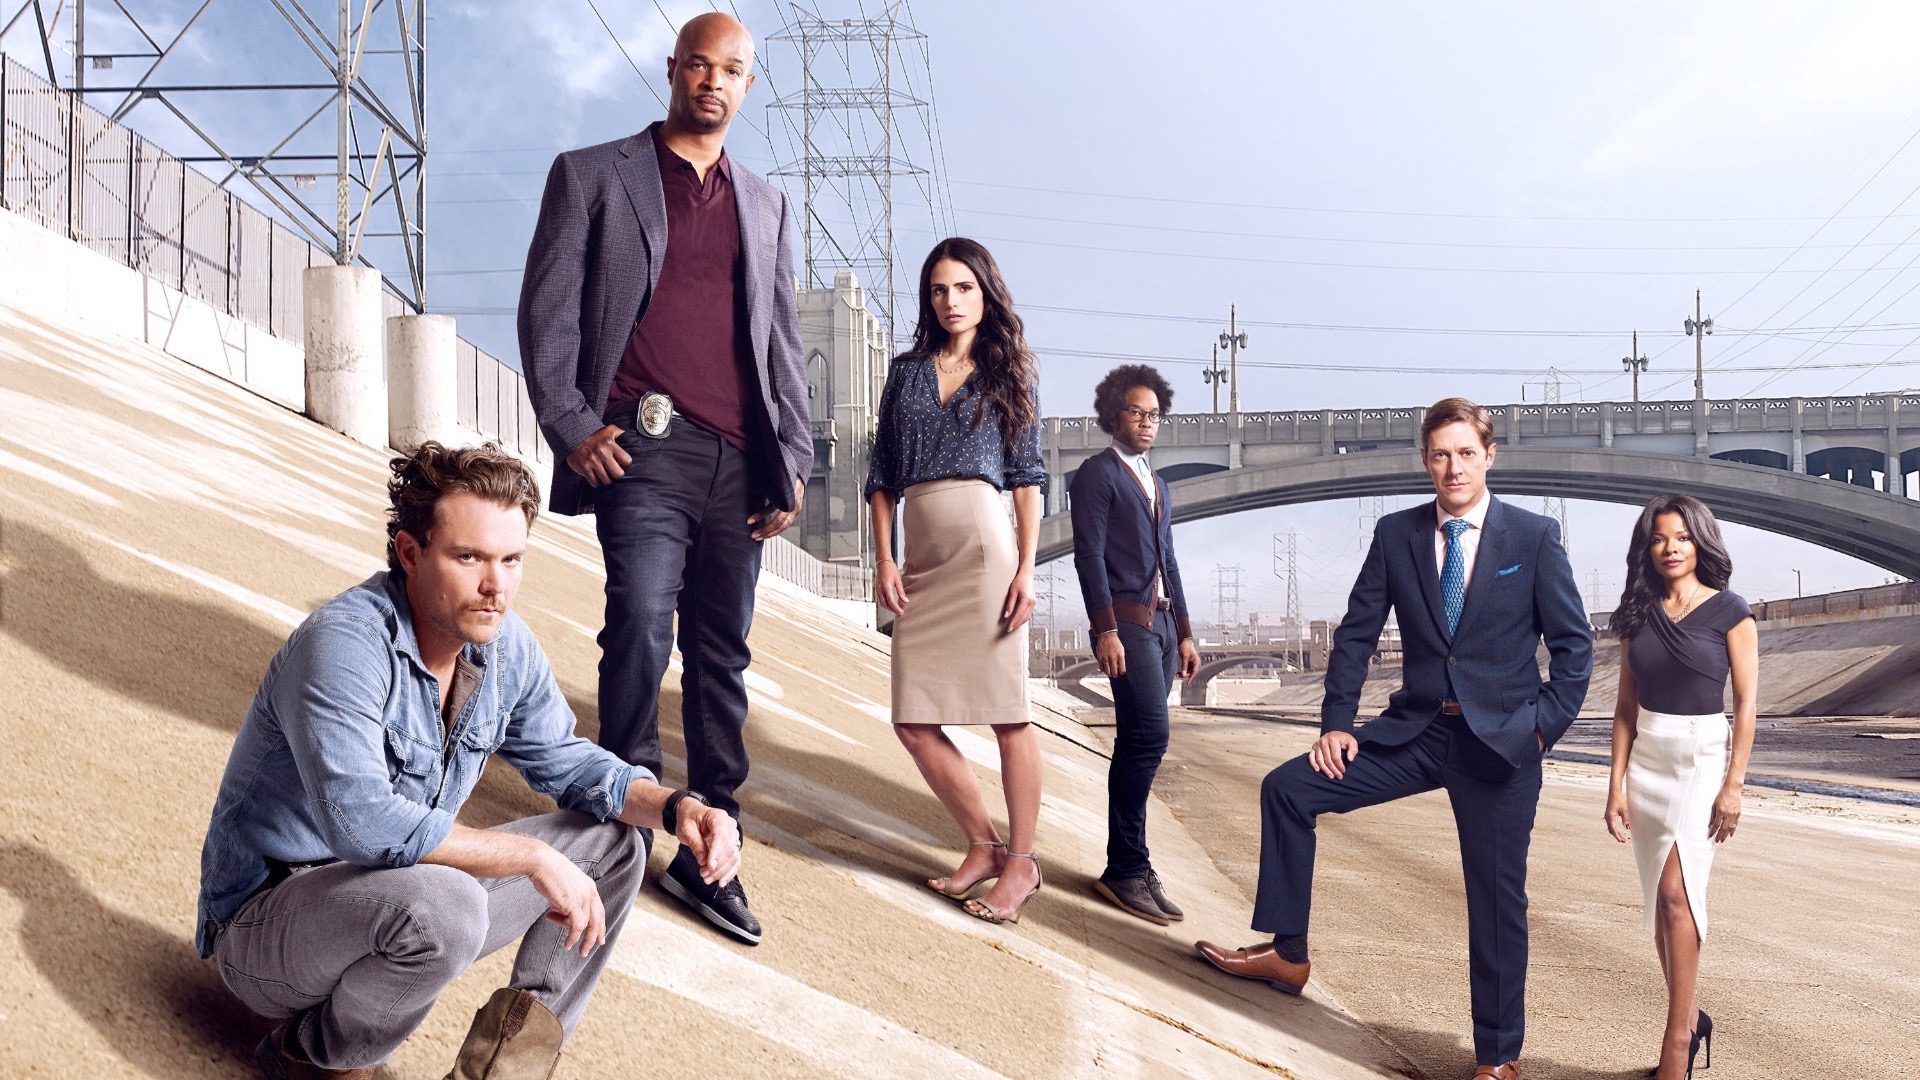 The cast of Lethal Weapon: The TV Series.